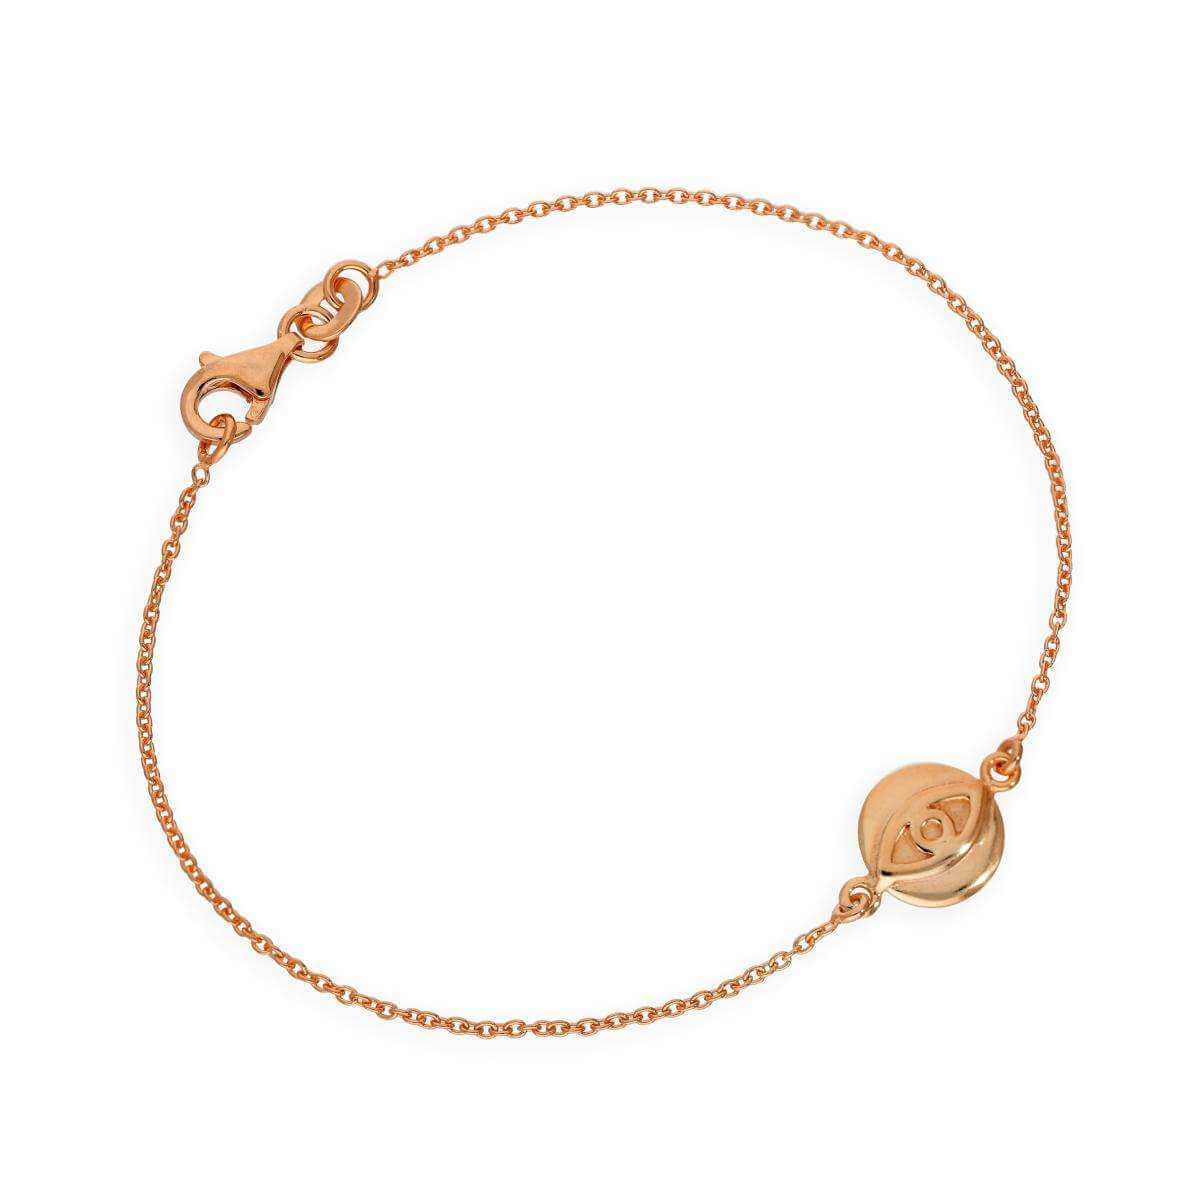 Rose Gold Plated Sterling Silver 7 Inch Evil Eye Bracelet